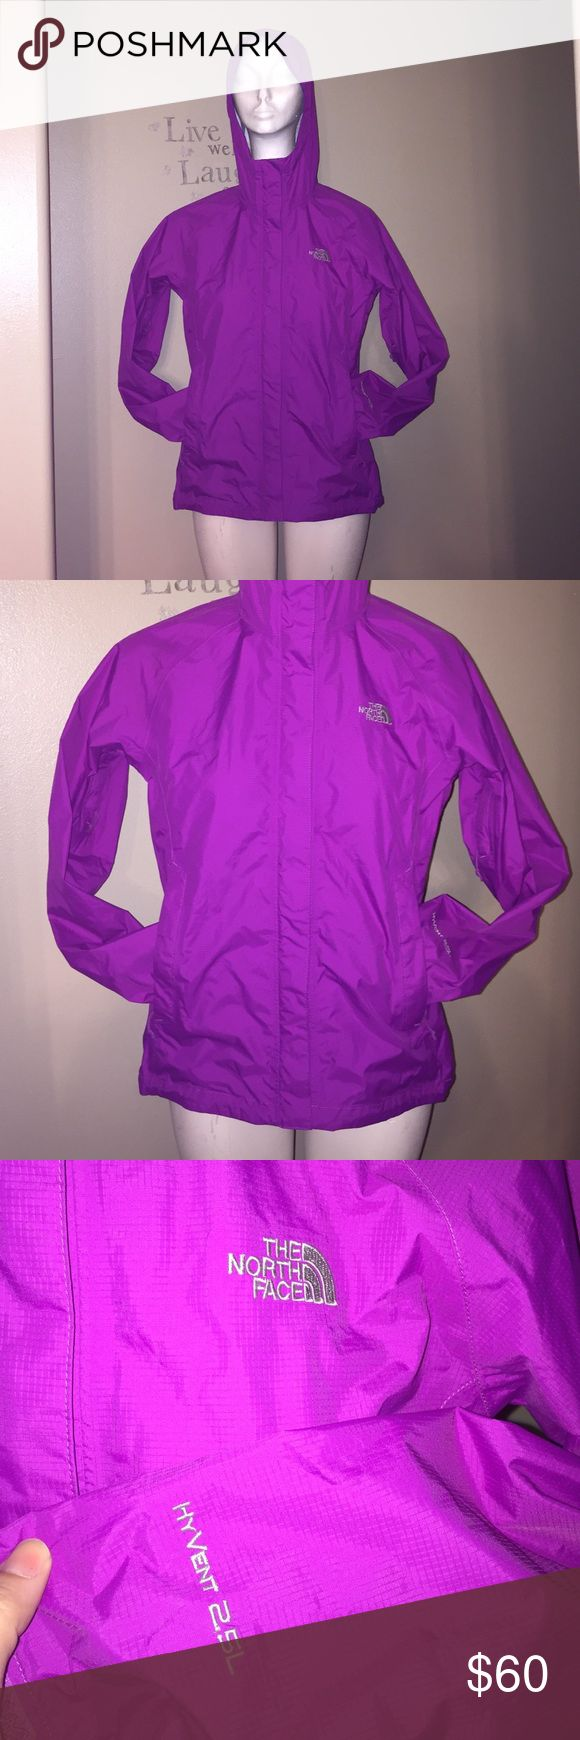 The North Face Rain Jacket Hyvent 2.5L Like new conditions!  The North Face magenta/purple rain jacket.   The jacket has attached hood and underarm zippers. The North Face Jackets & Coats